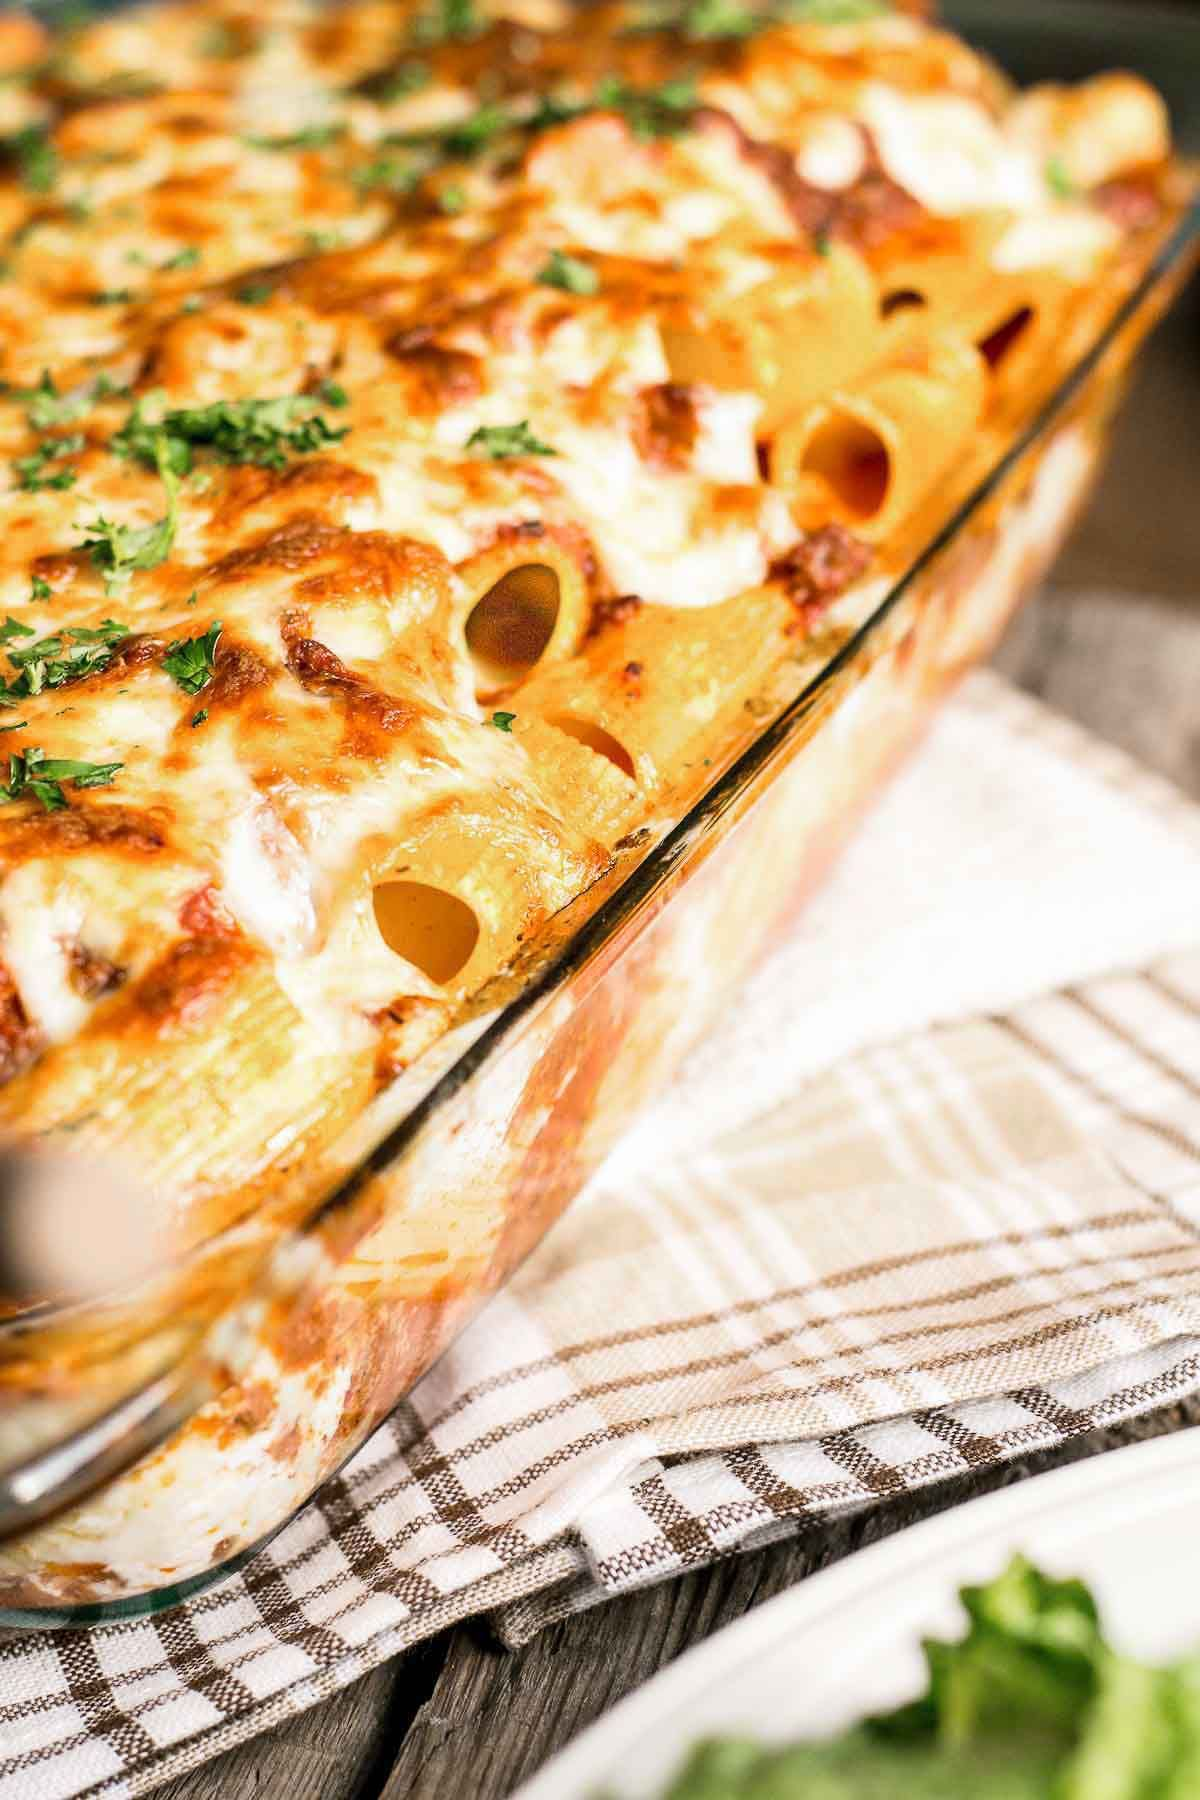 Baked Ziti With Sour Cream Food Doodles Baked Pasta Dishes Sour Cream Pasta Baked Ziti